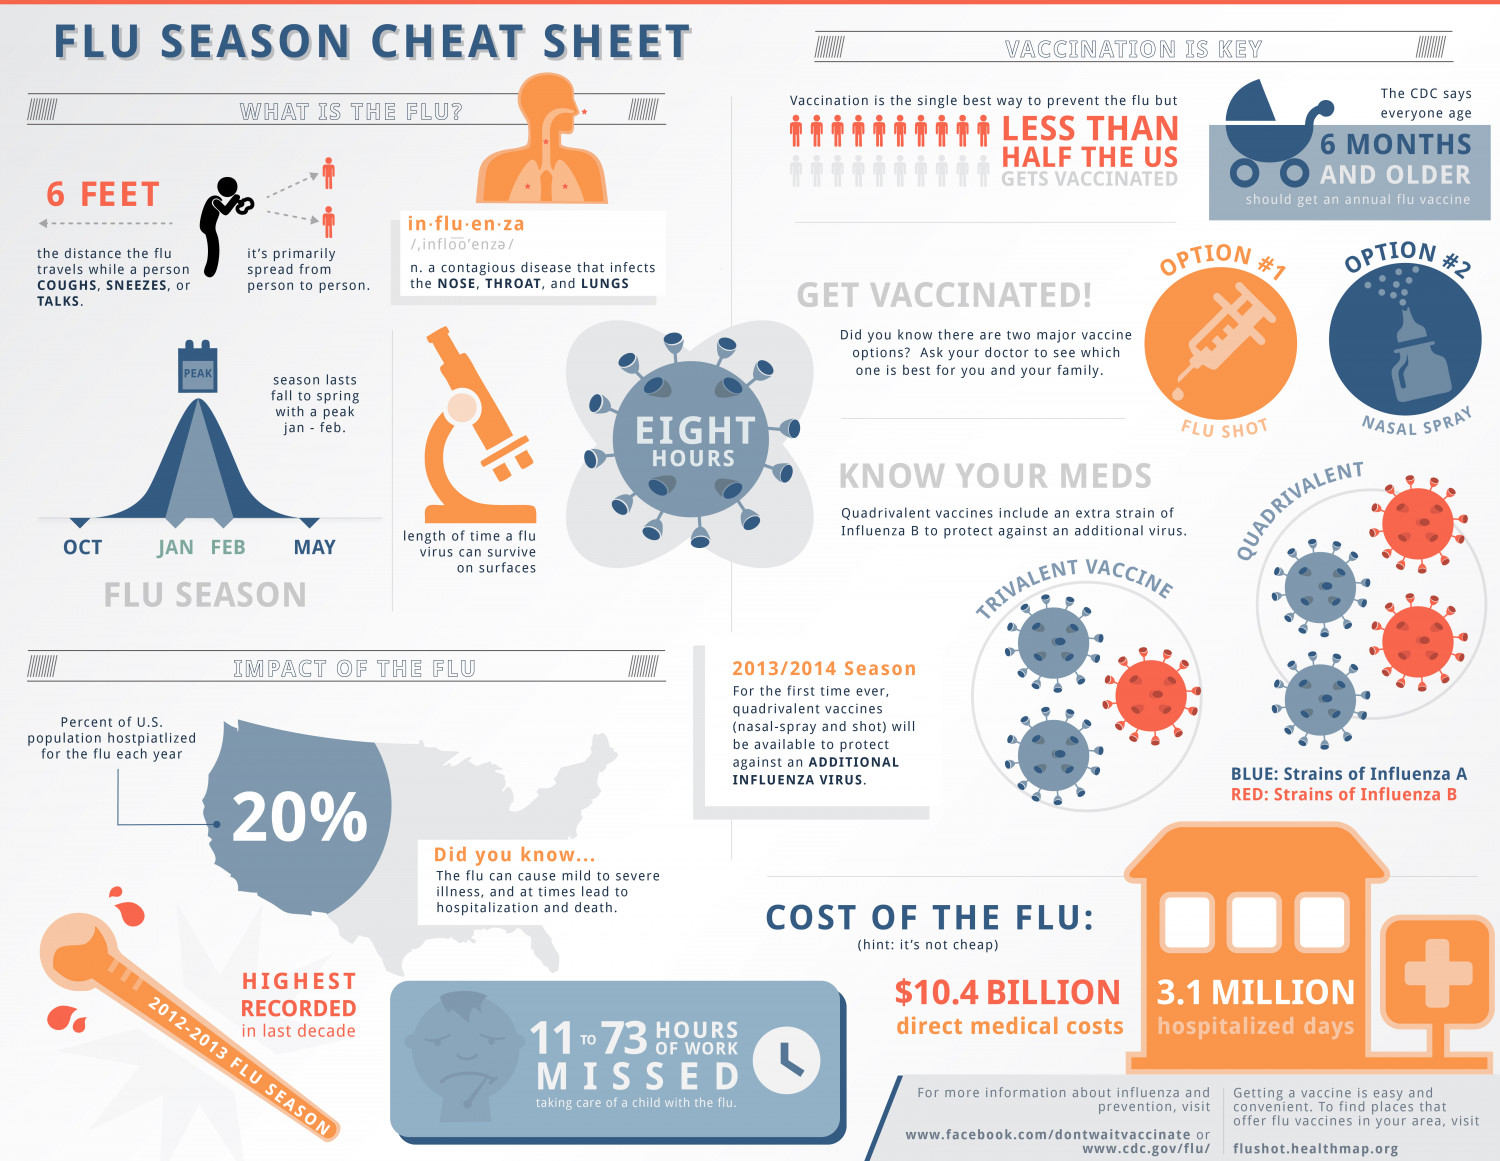 Flu Season Cheat Sheet Infographic